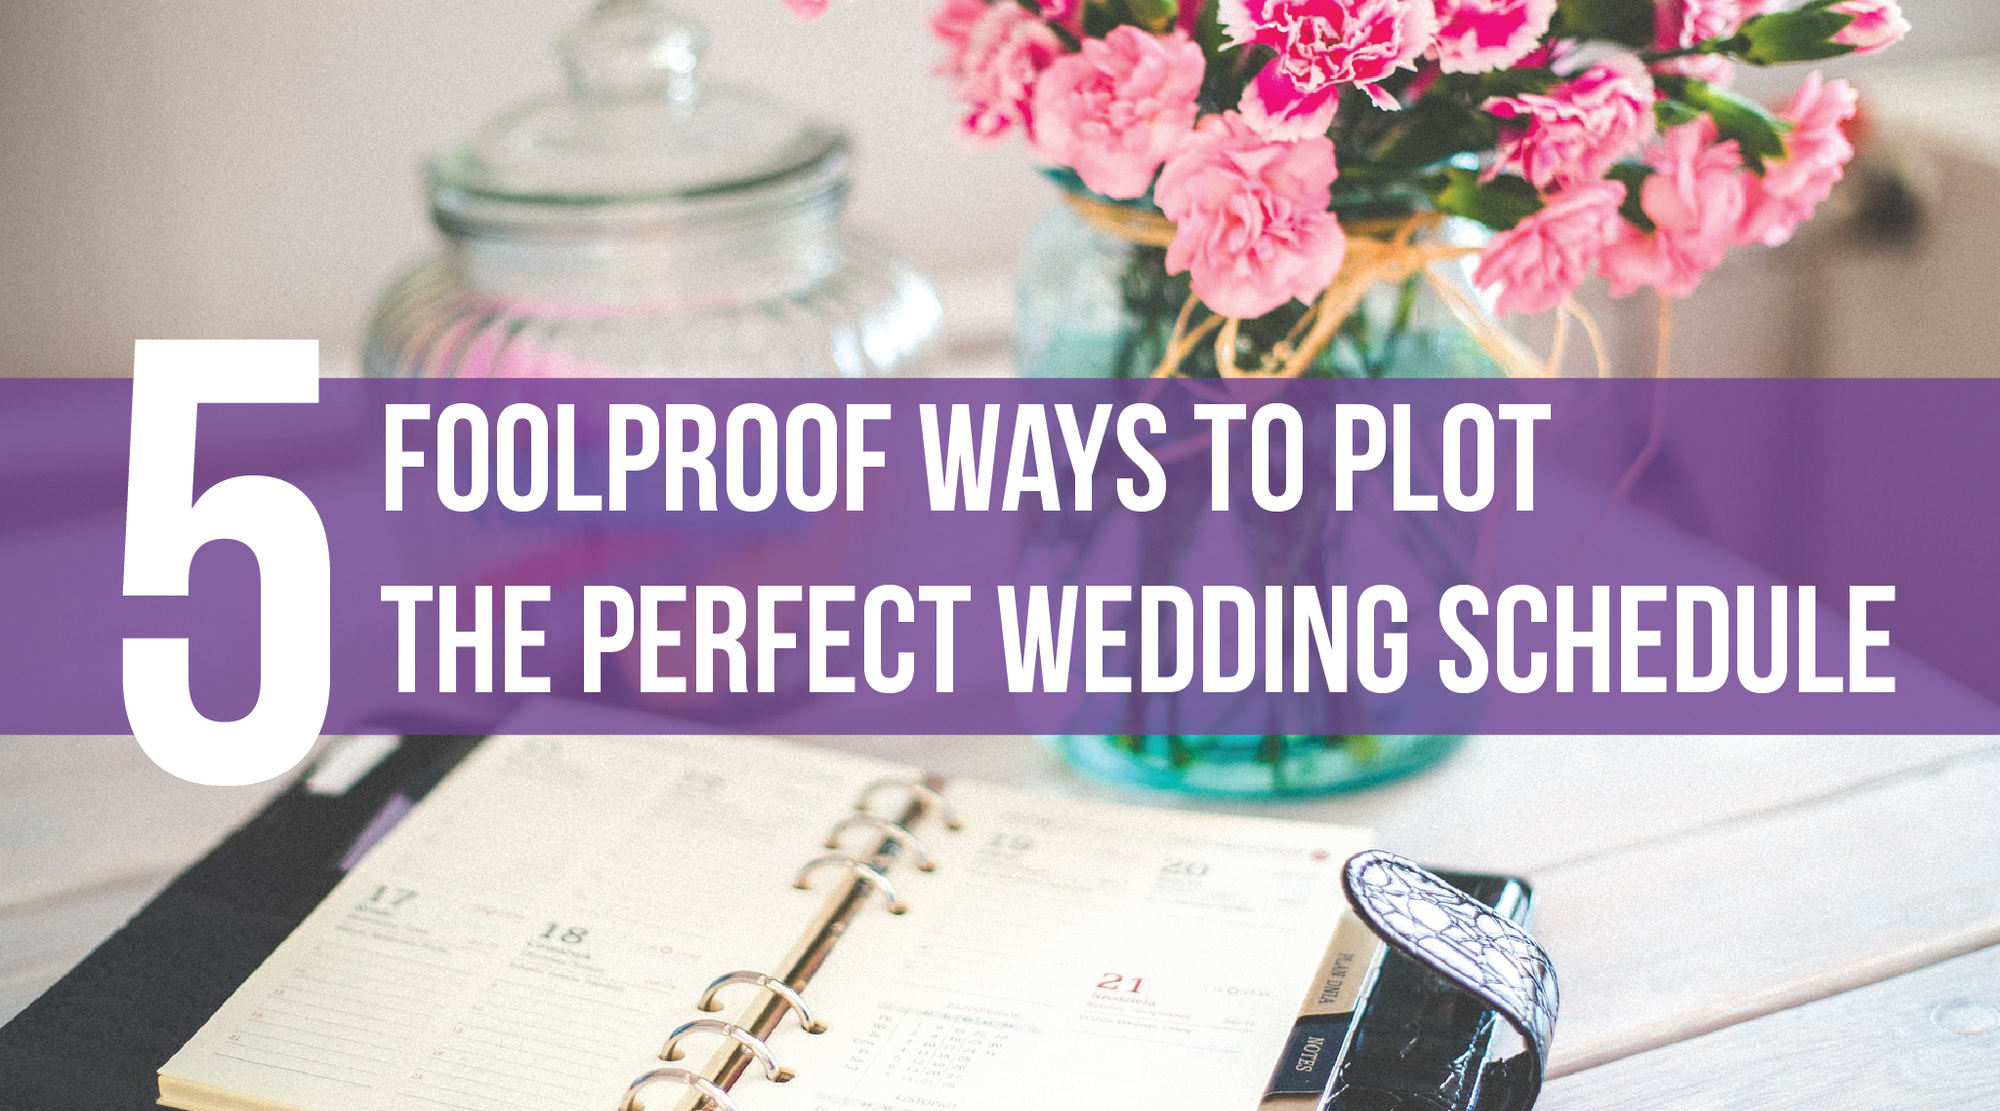 5 Foolproof Ways to Plot the Perfect Wedding Schedule